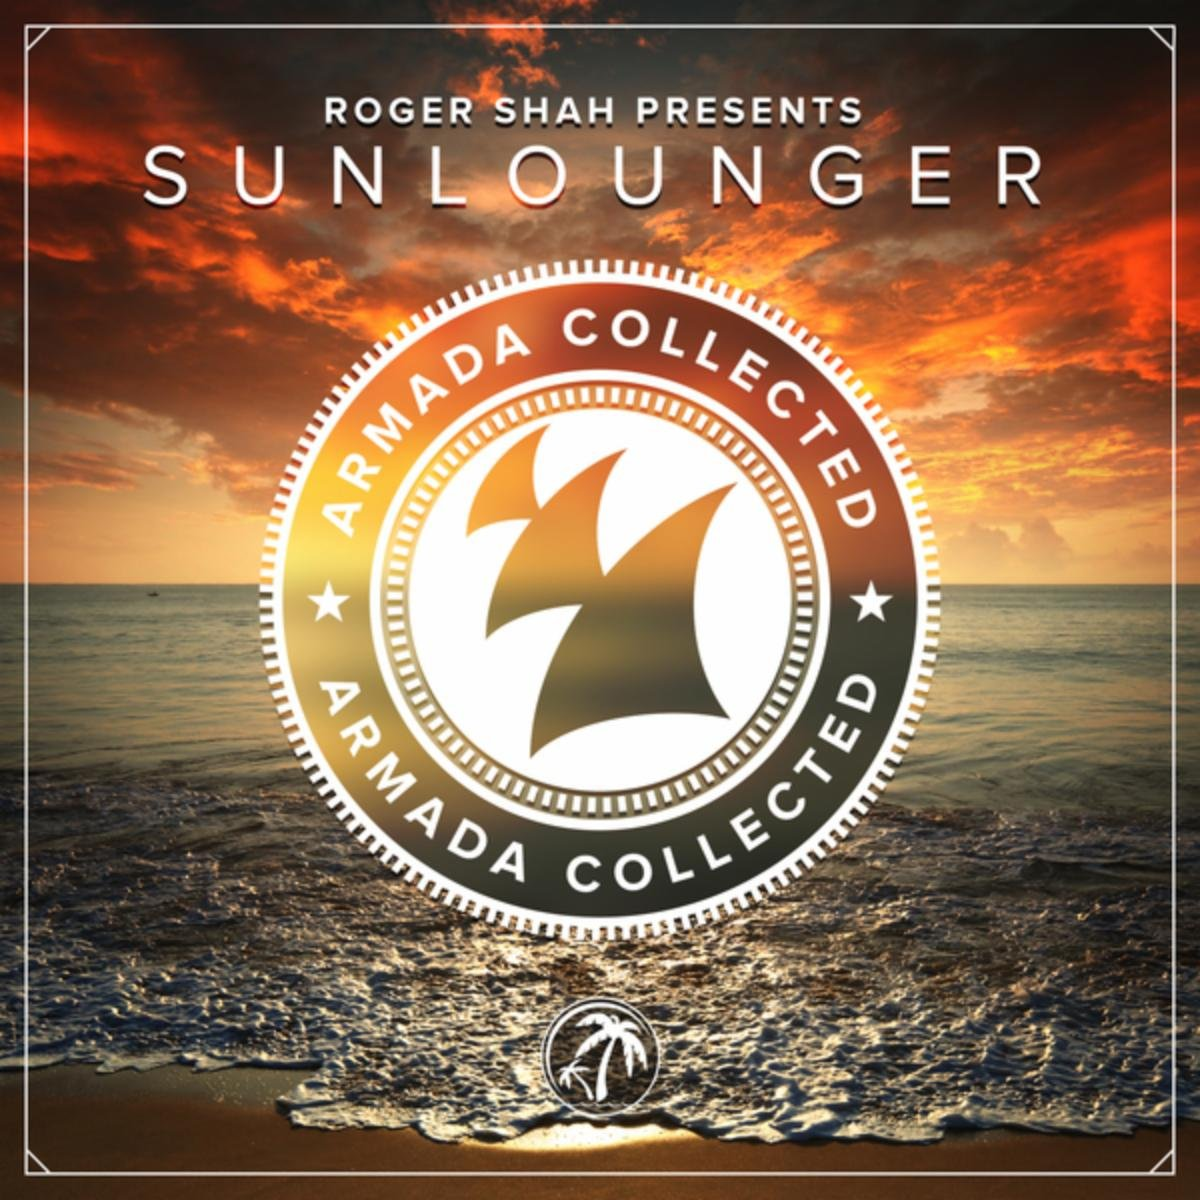 Roger Shah Presents Sunlounger – Armada Collected (2014) [FLAC]